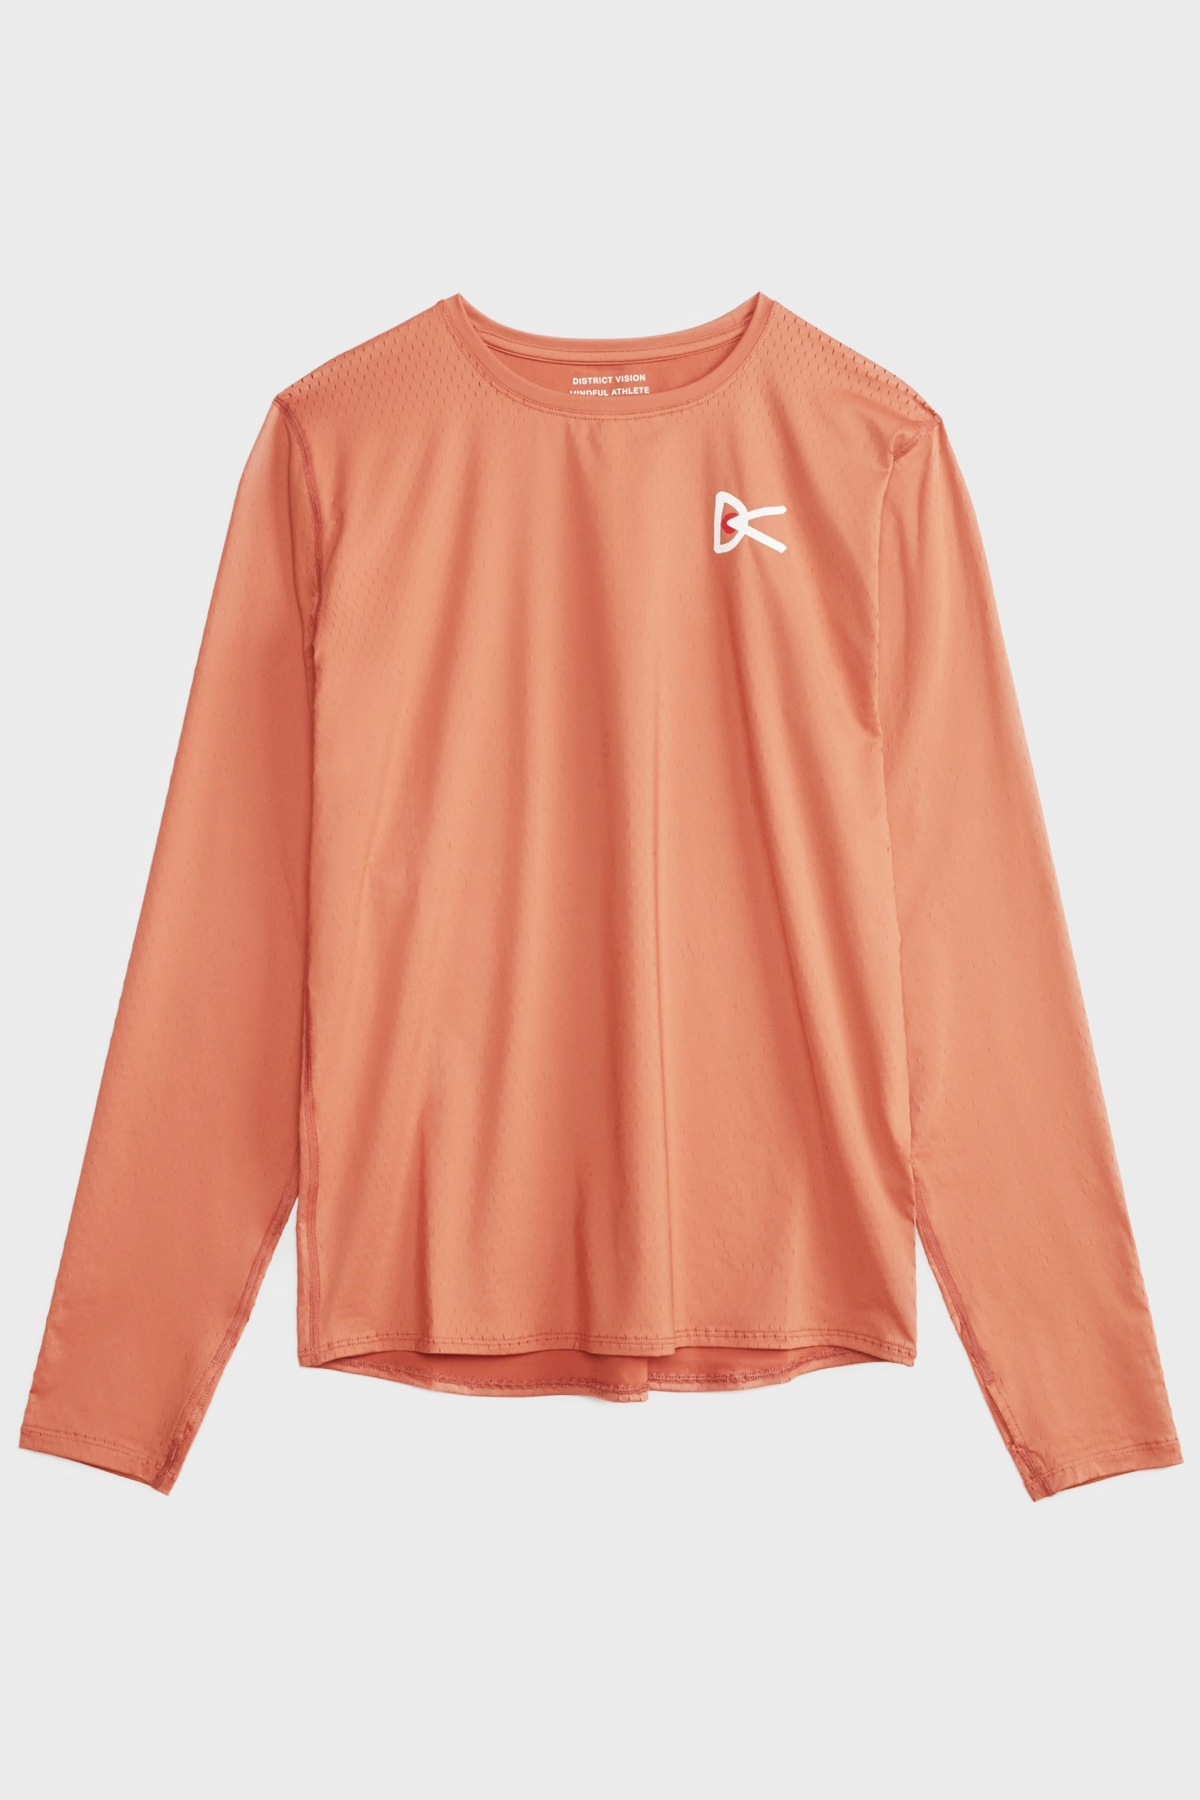 District Vision - air wear tech long sleeve - Rust